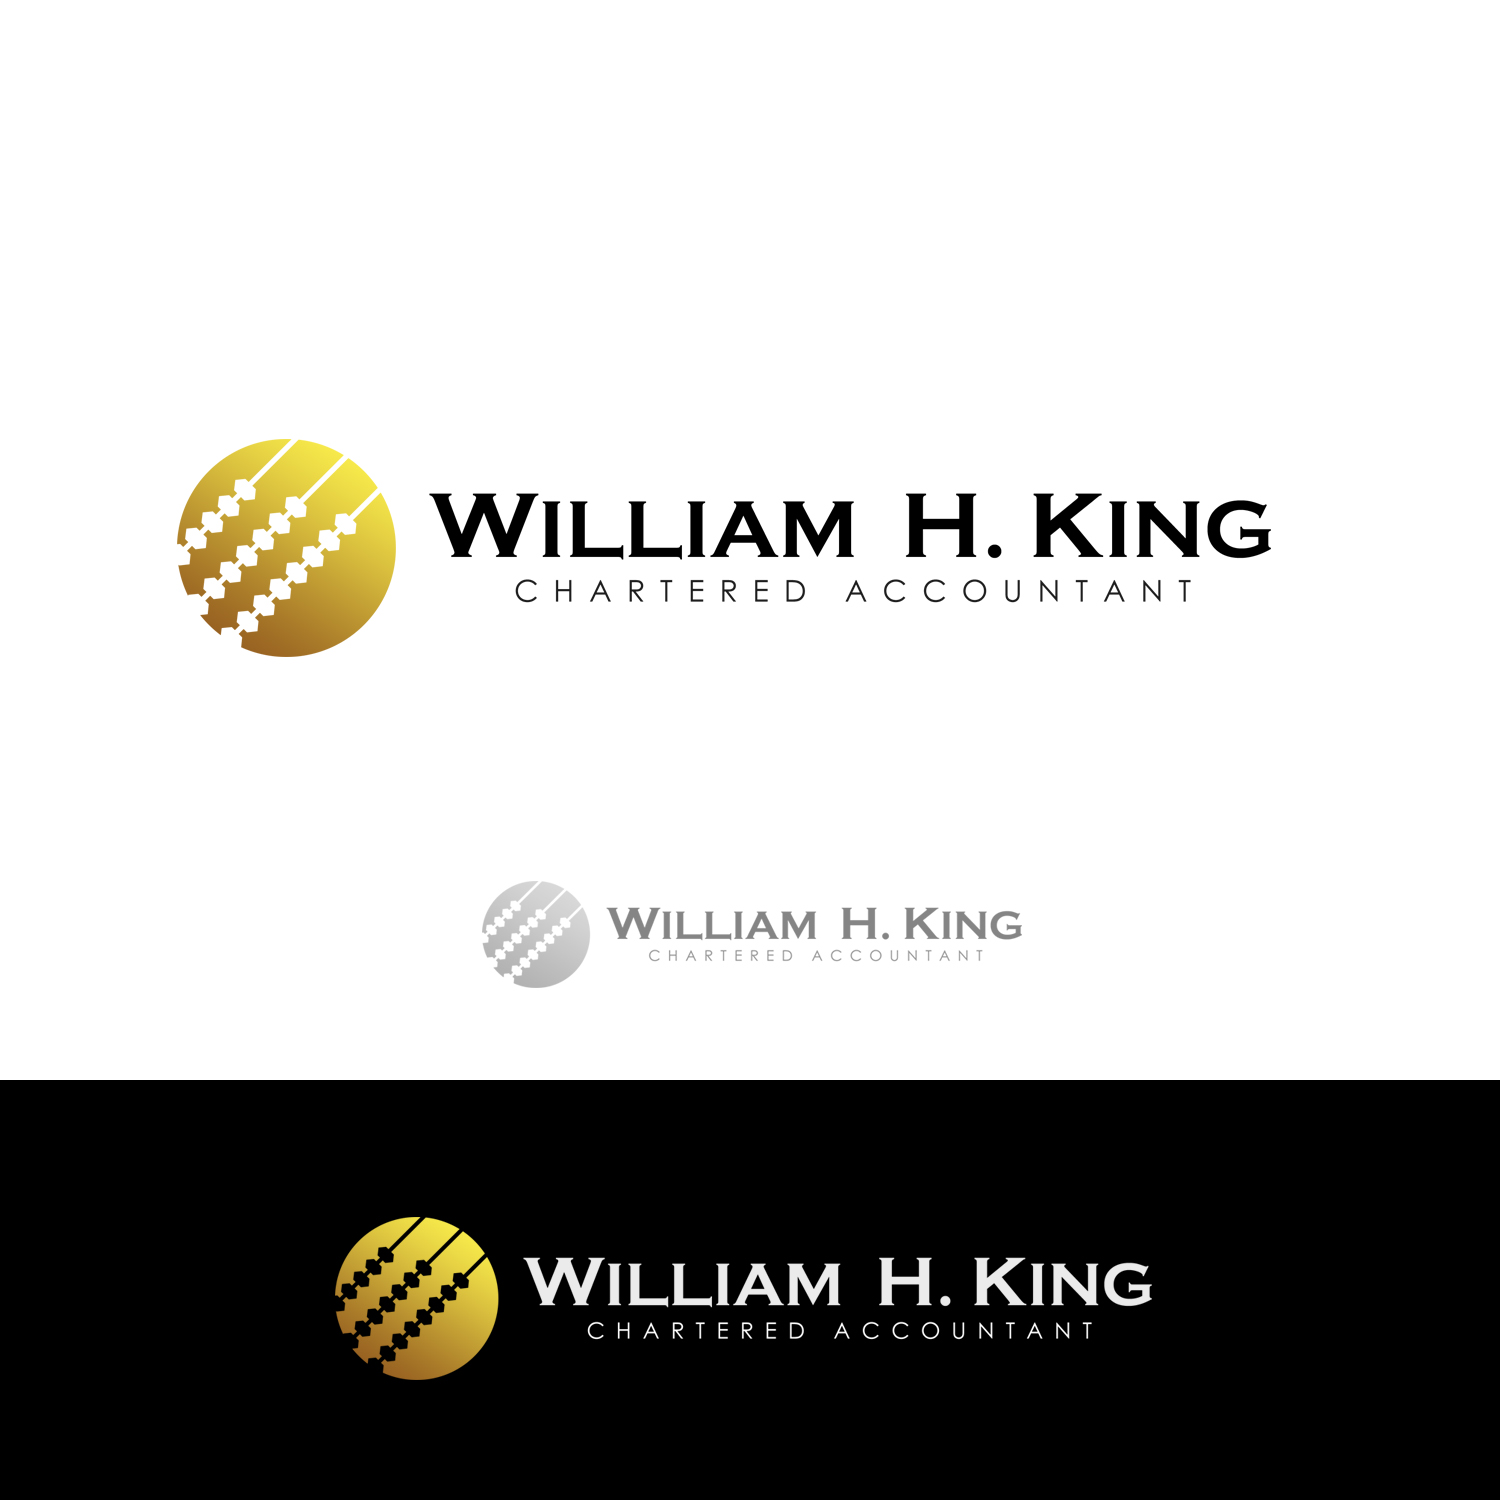 Logo Design by omARTist - Entry No. 196 in the Logo Design Contest New Logo Design for William H. King, Chartered Accountant.